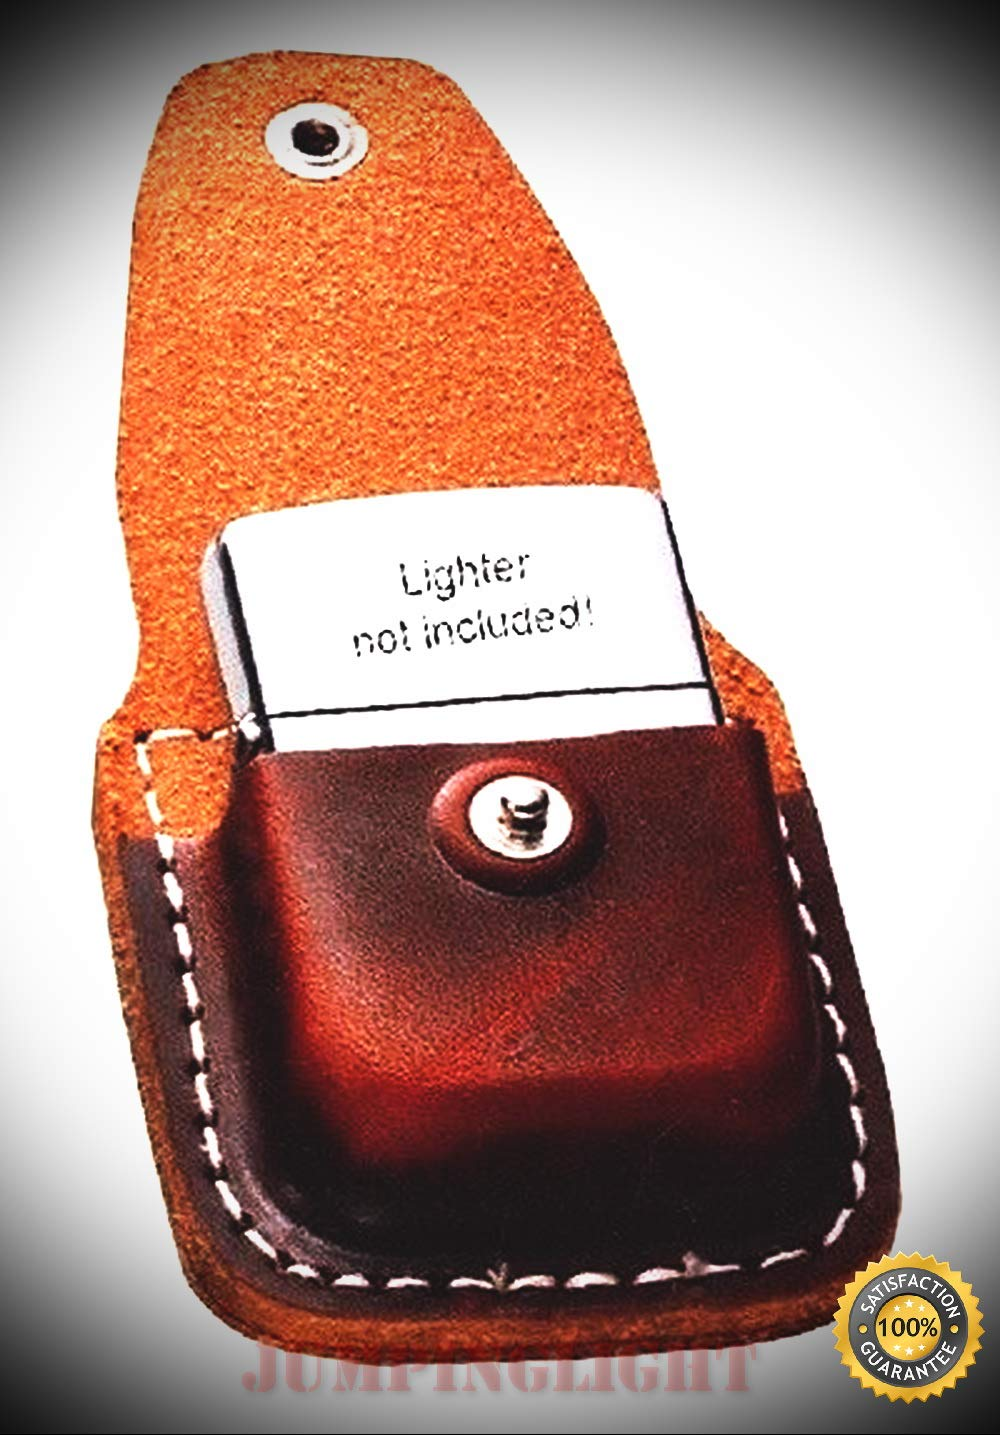 ZO17020 Lighter Pouch Brown Leather Attaches to Belt Clip Light - Premium Lighter Fluid (Comes Unfilled) - Made in USA!